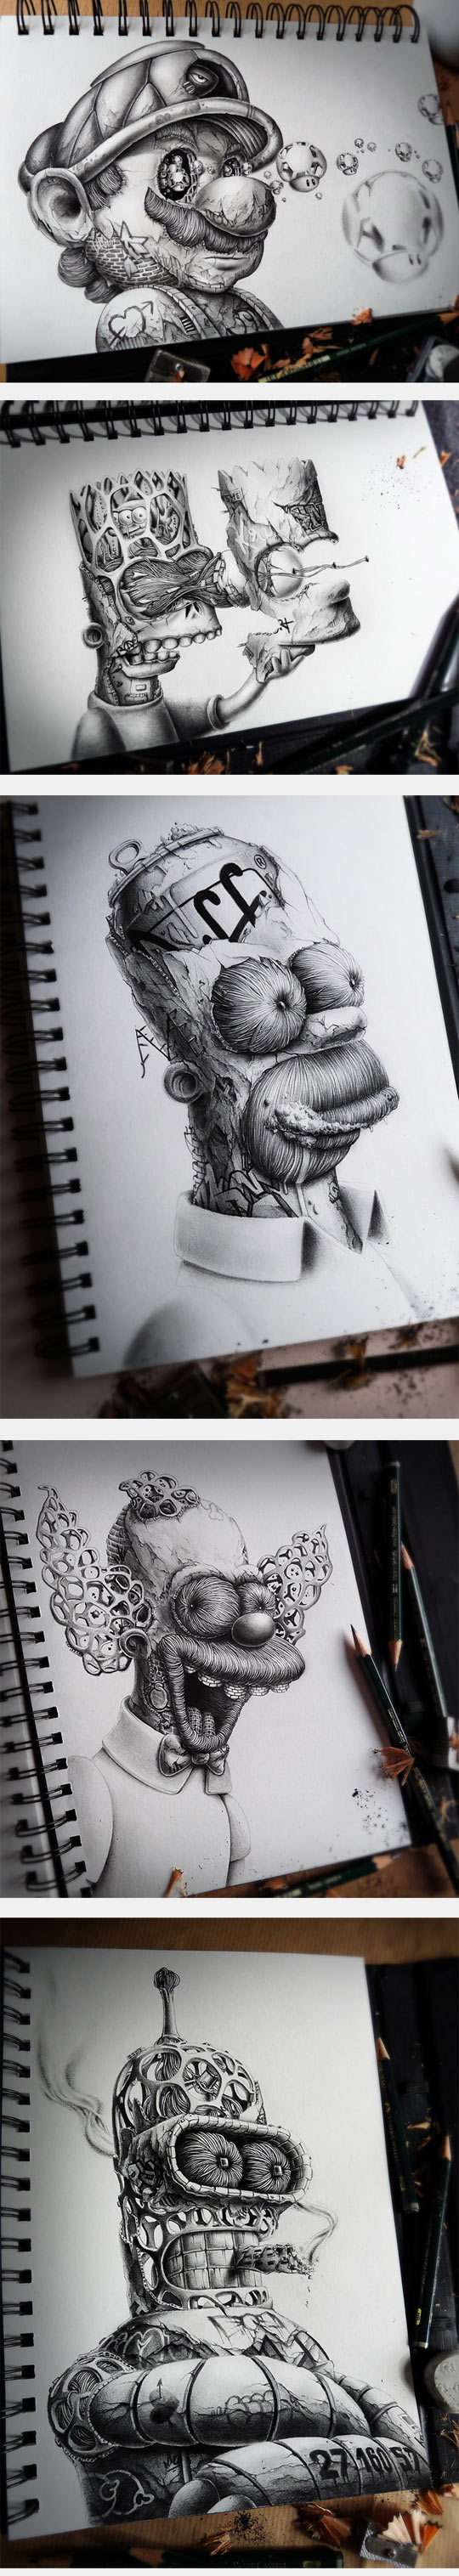 Amazing Sketches Of Famous Characters